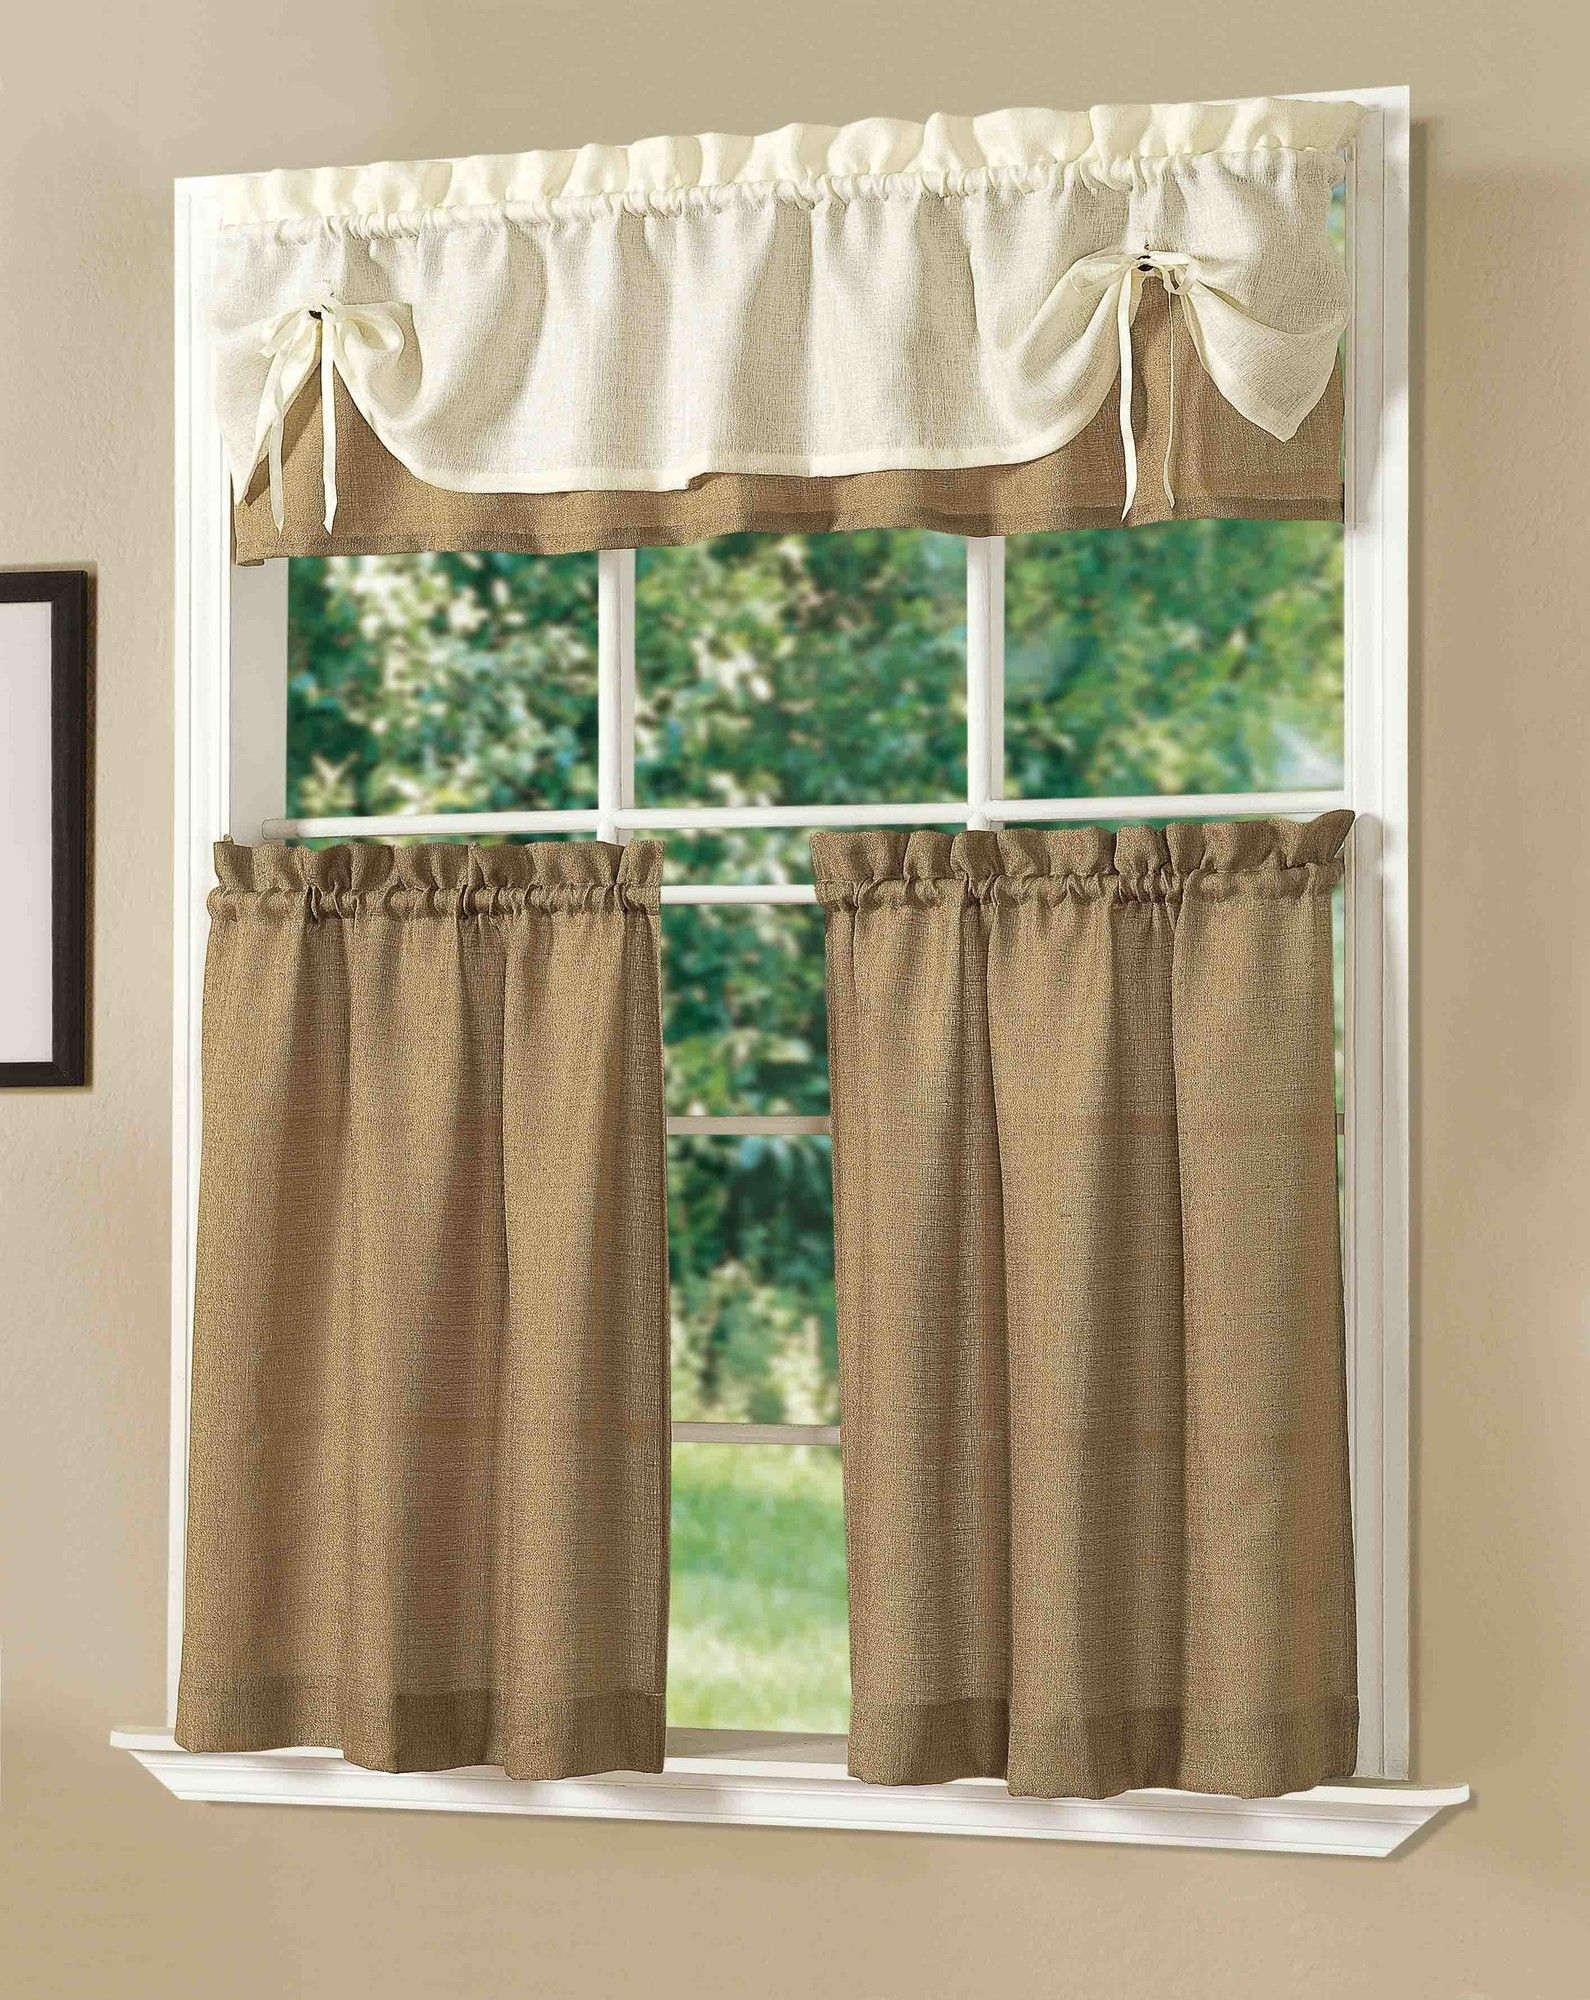 Decorations Where Can I Buy Burlap Curtains Burlap Fabric For With Regard To Turquoise Burlap Curtains (Image 13 of 15)